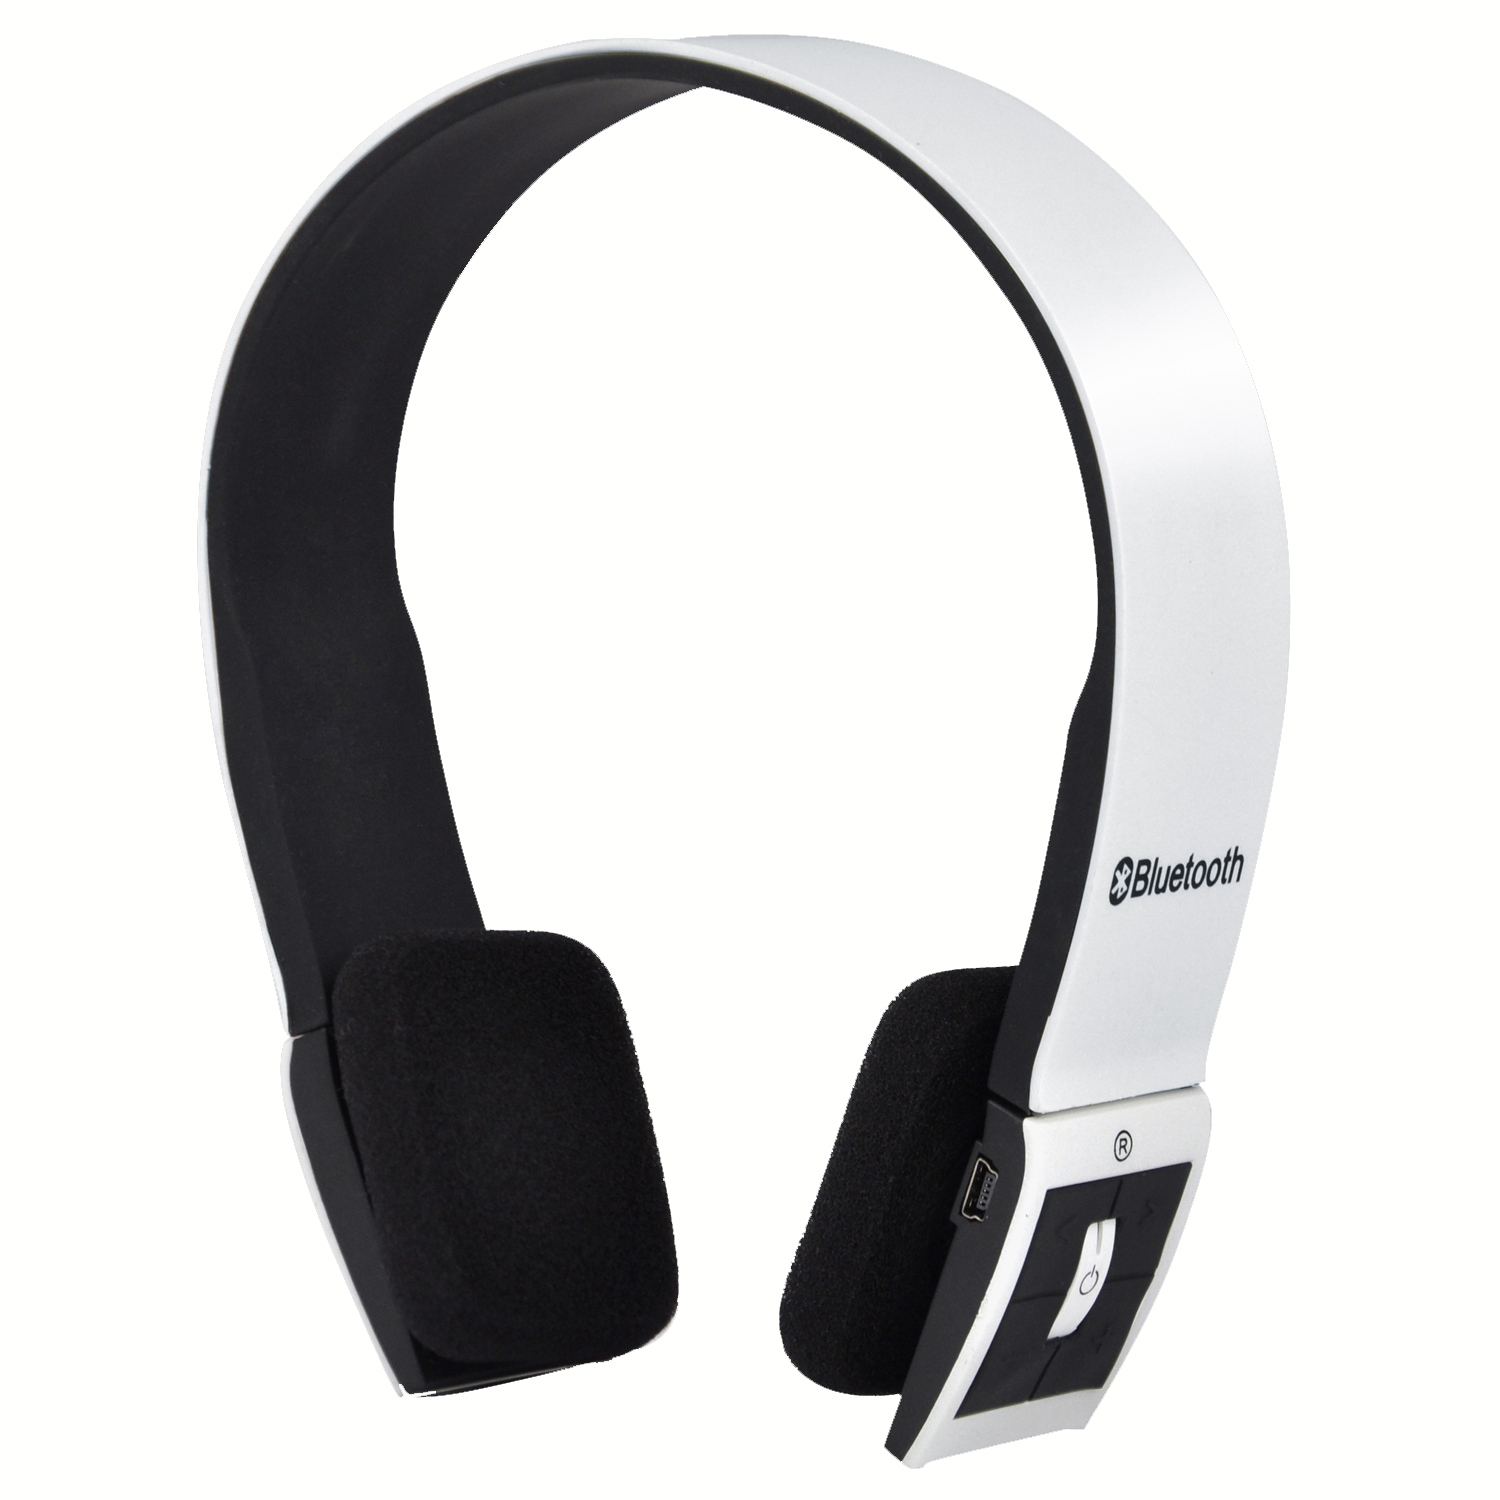 trixes bluetooth wireless headset headphones with call mic microphone white ebay. Black Bedroom Furniture Sets. Home Design Ideas